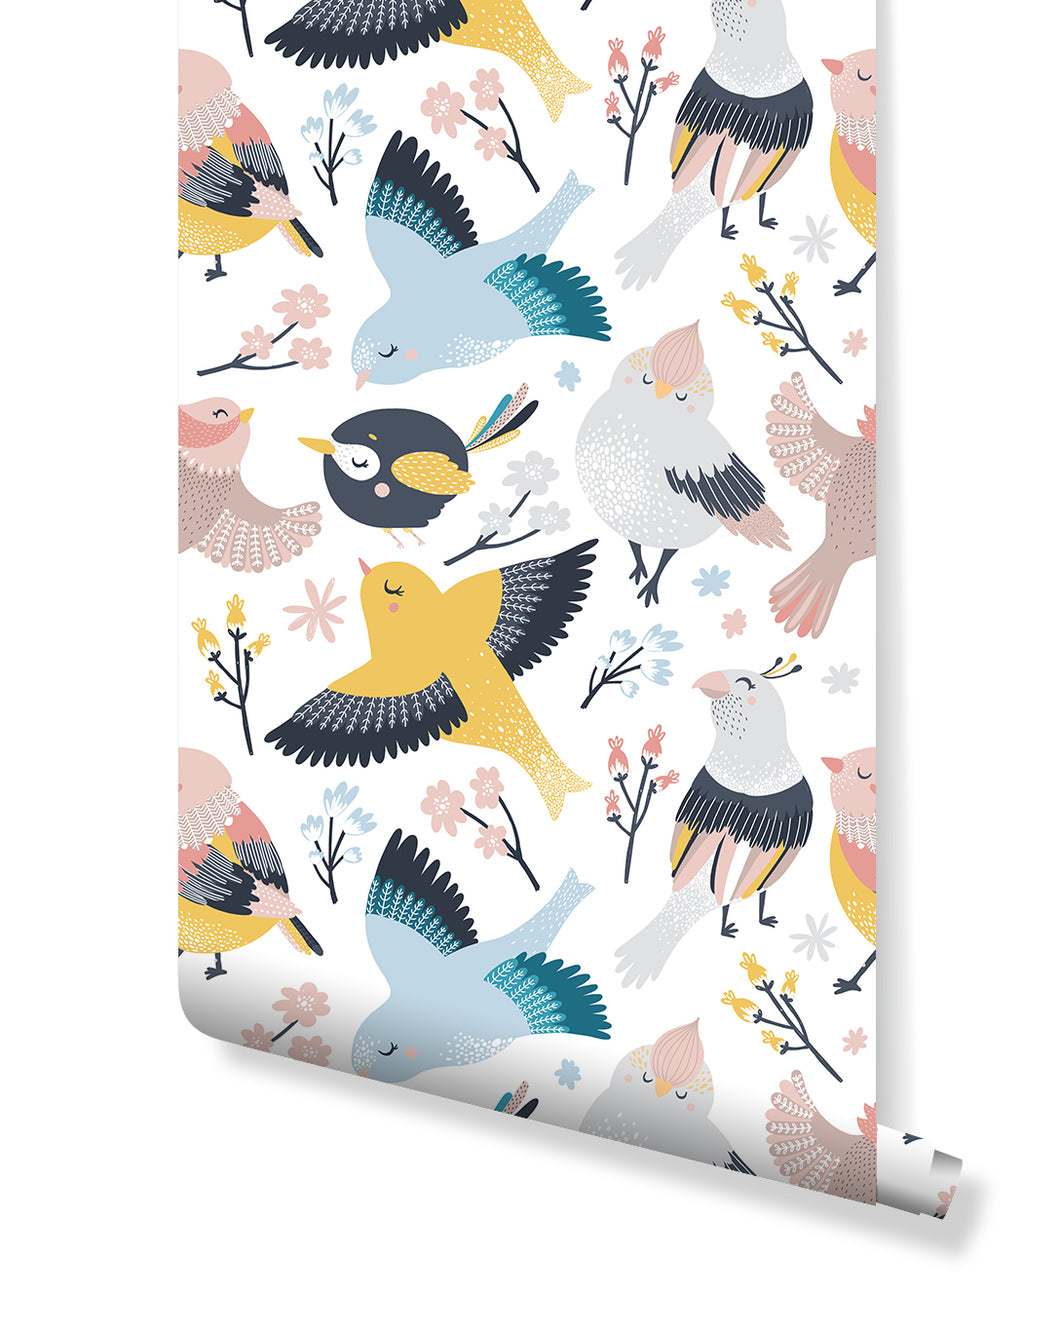 Cute Birds Removable Wallpaper for Nursery and Kids Room, Self Adhesive Wall Paper Wall Decor with Colorful small Birds CC142